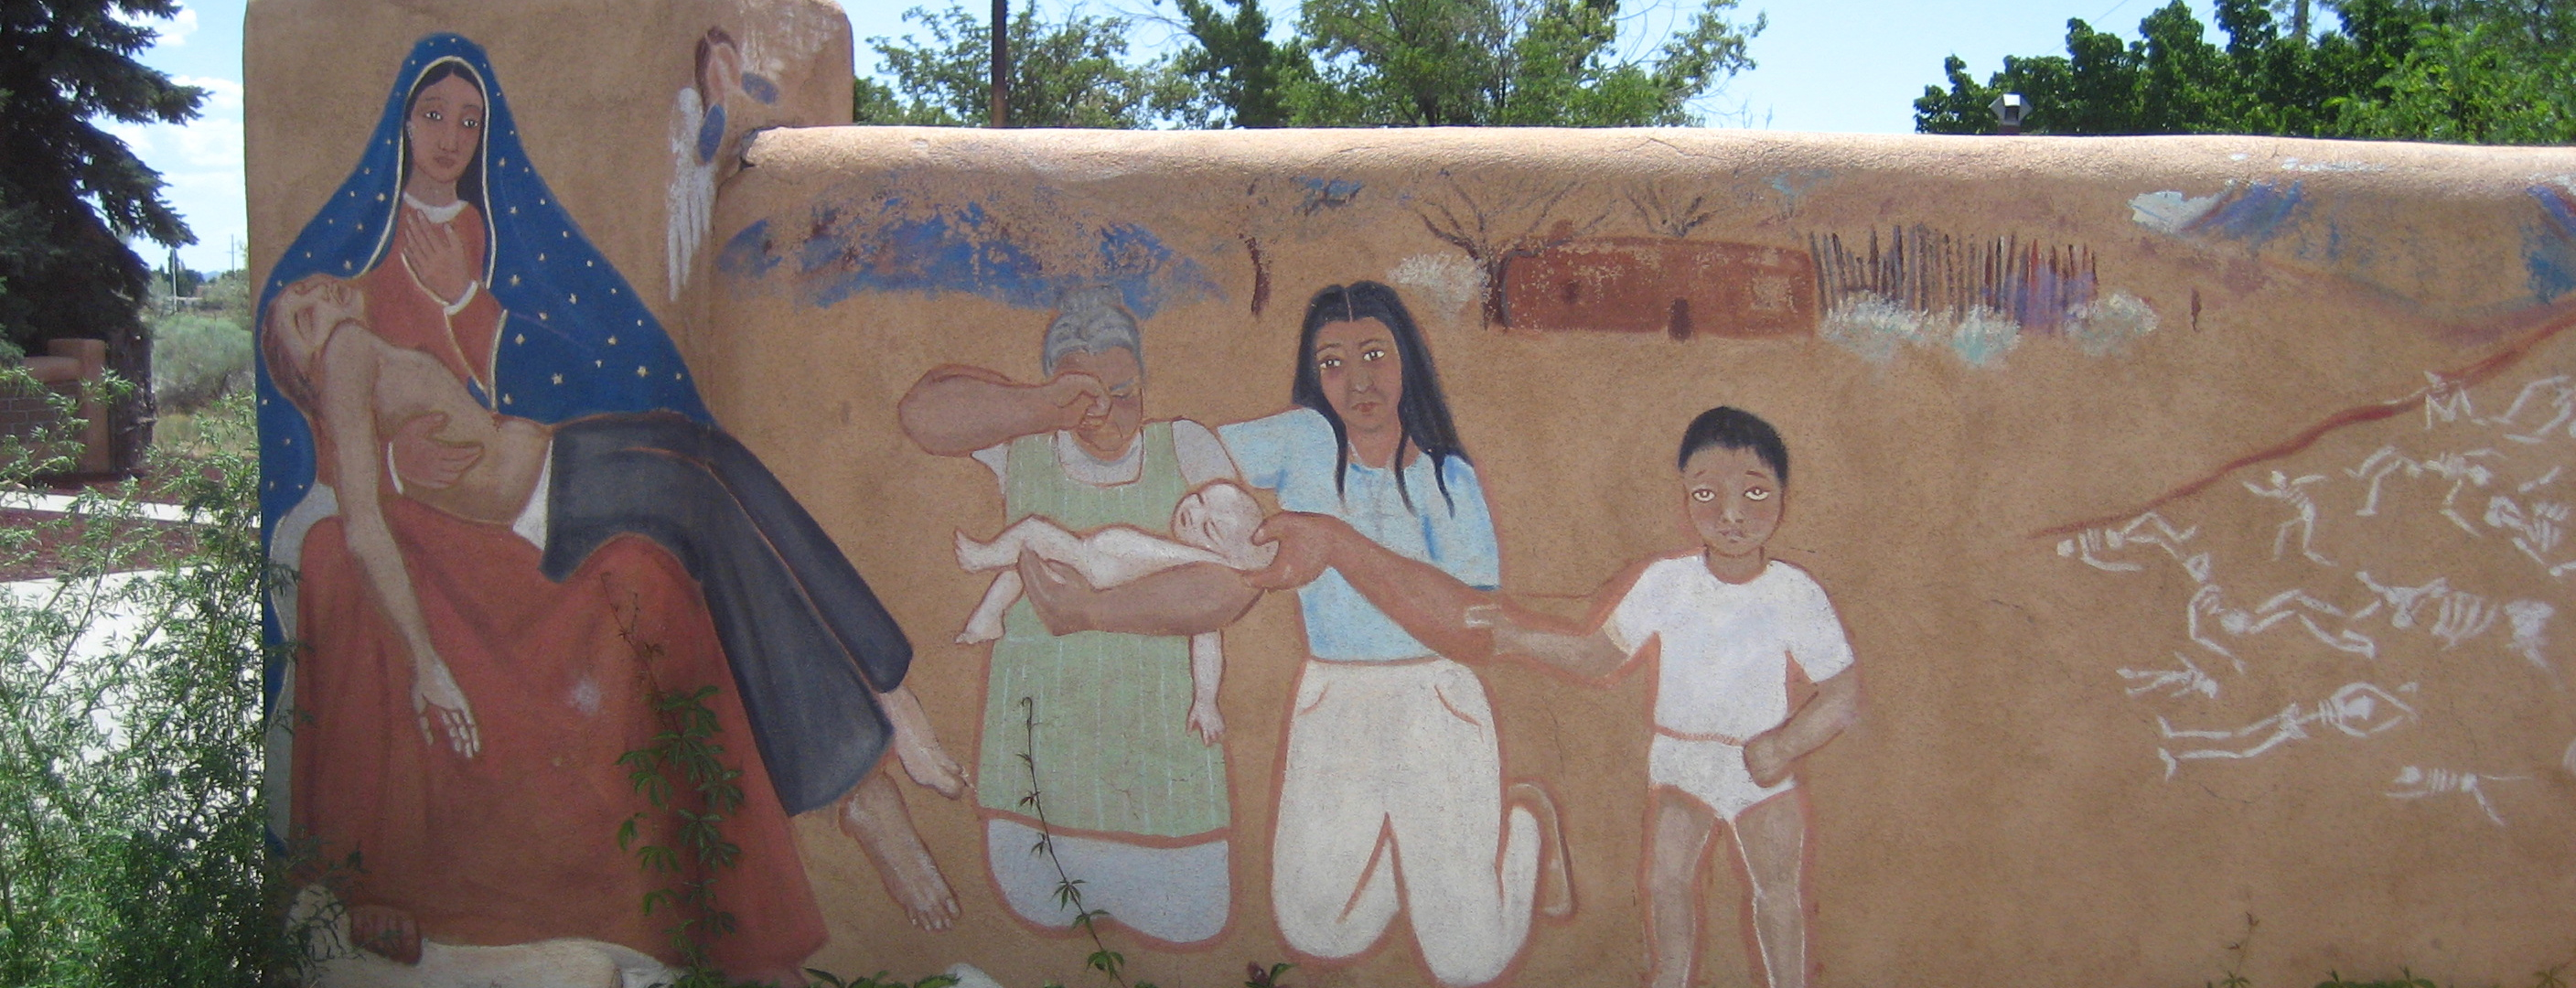 Mural, New Mexico.   Photo by Janis H. Jenkins